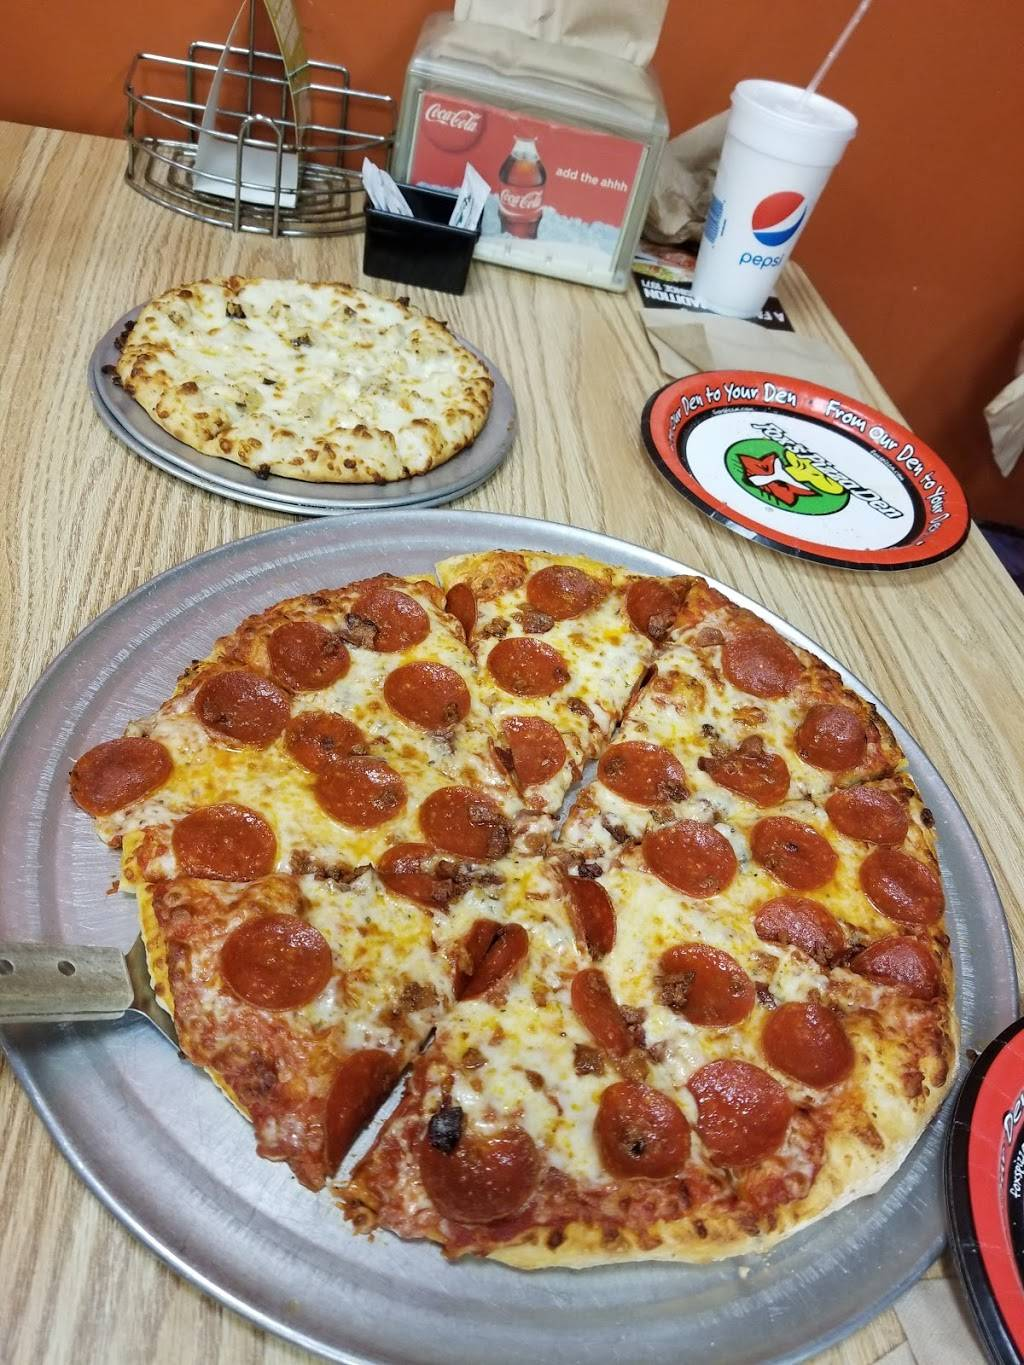 Foxs Pizza Den | restaurant | 5266 Old Hwy 11, Hattiesburg, MS 39402, USA | 6012643690 OR +1 601-264-3690